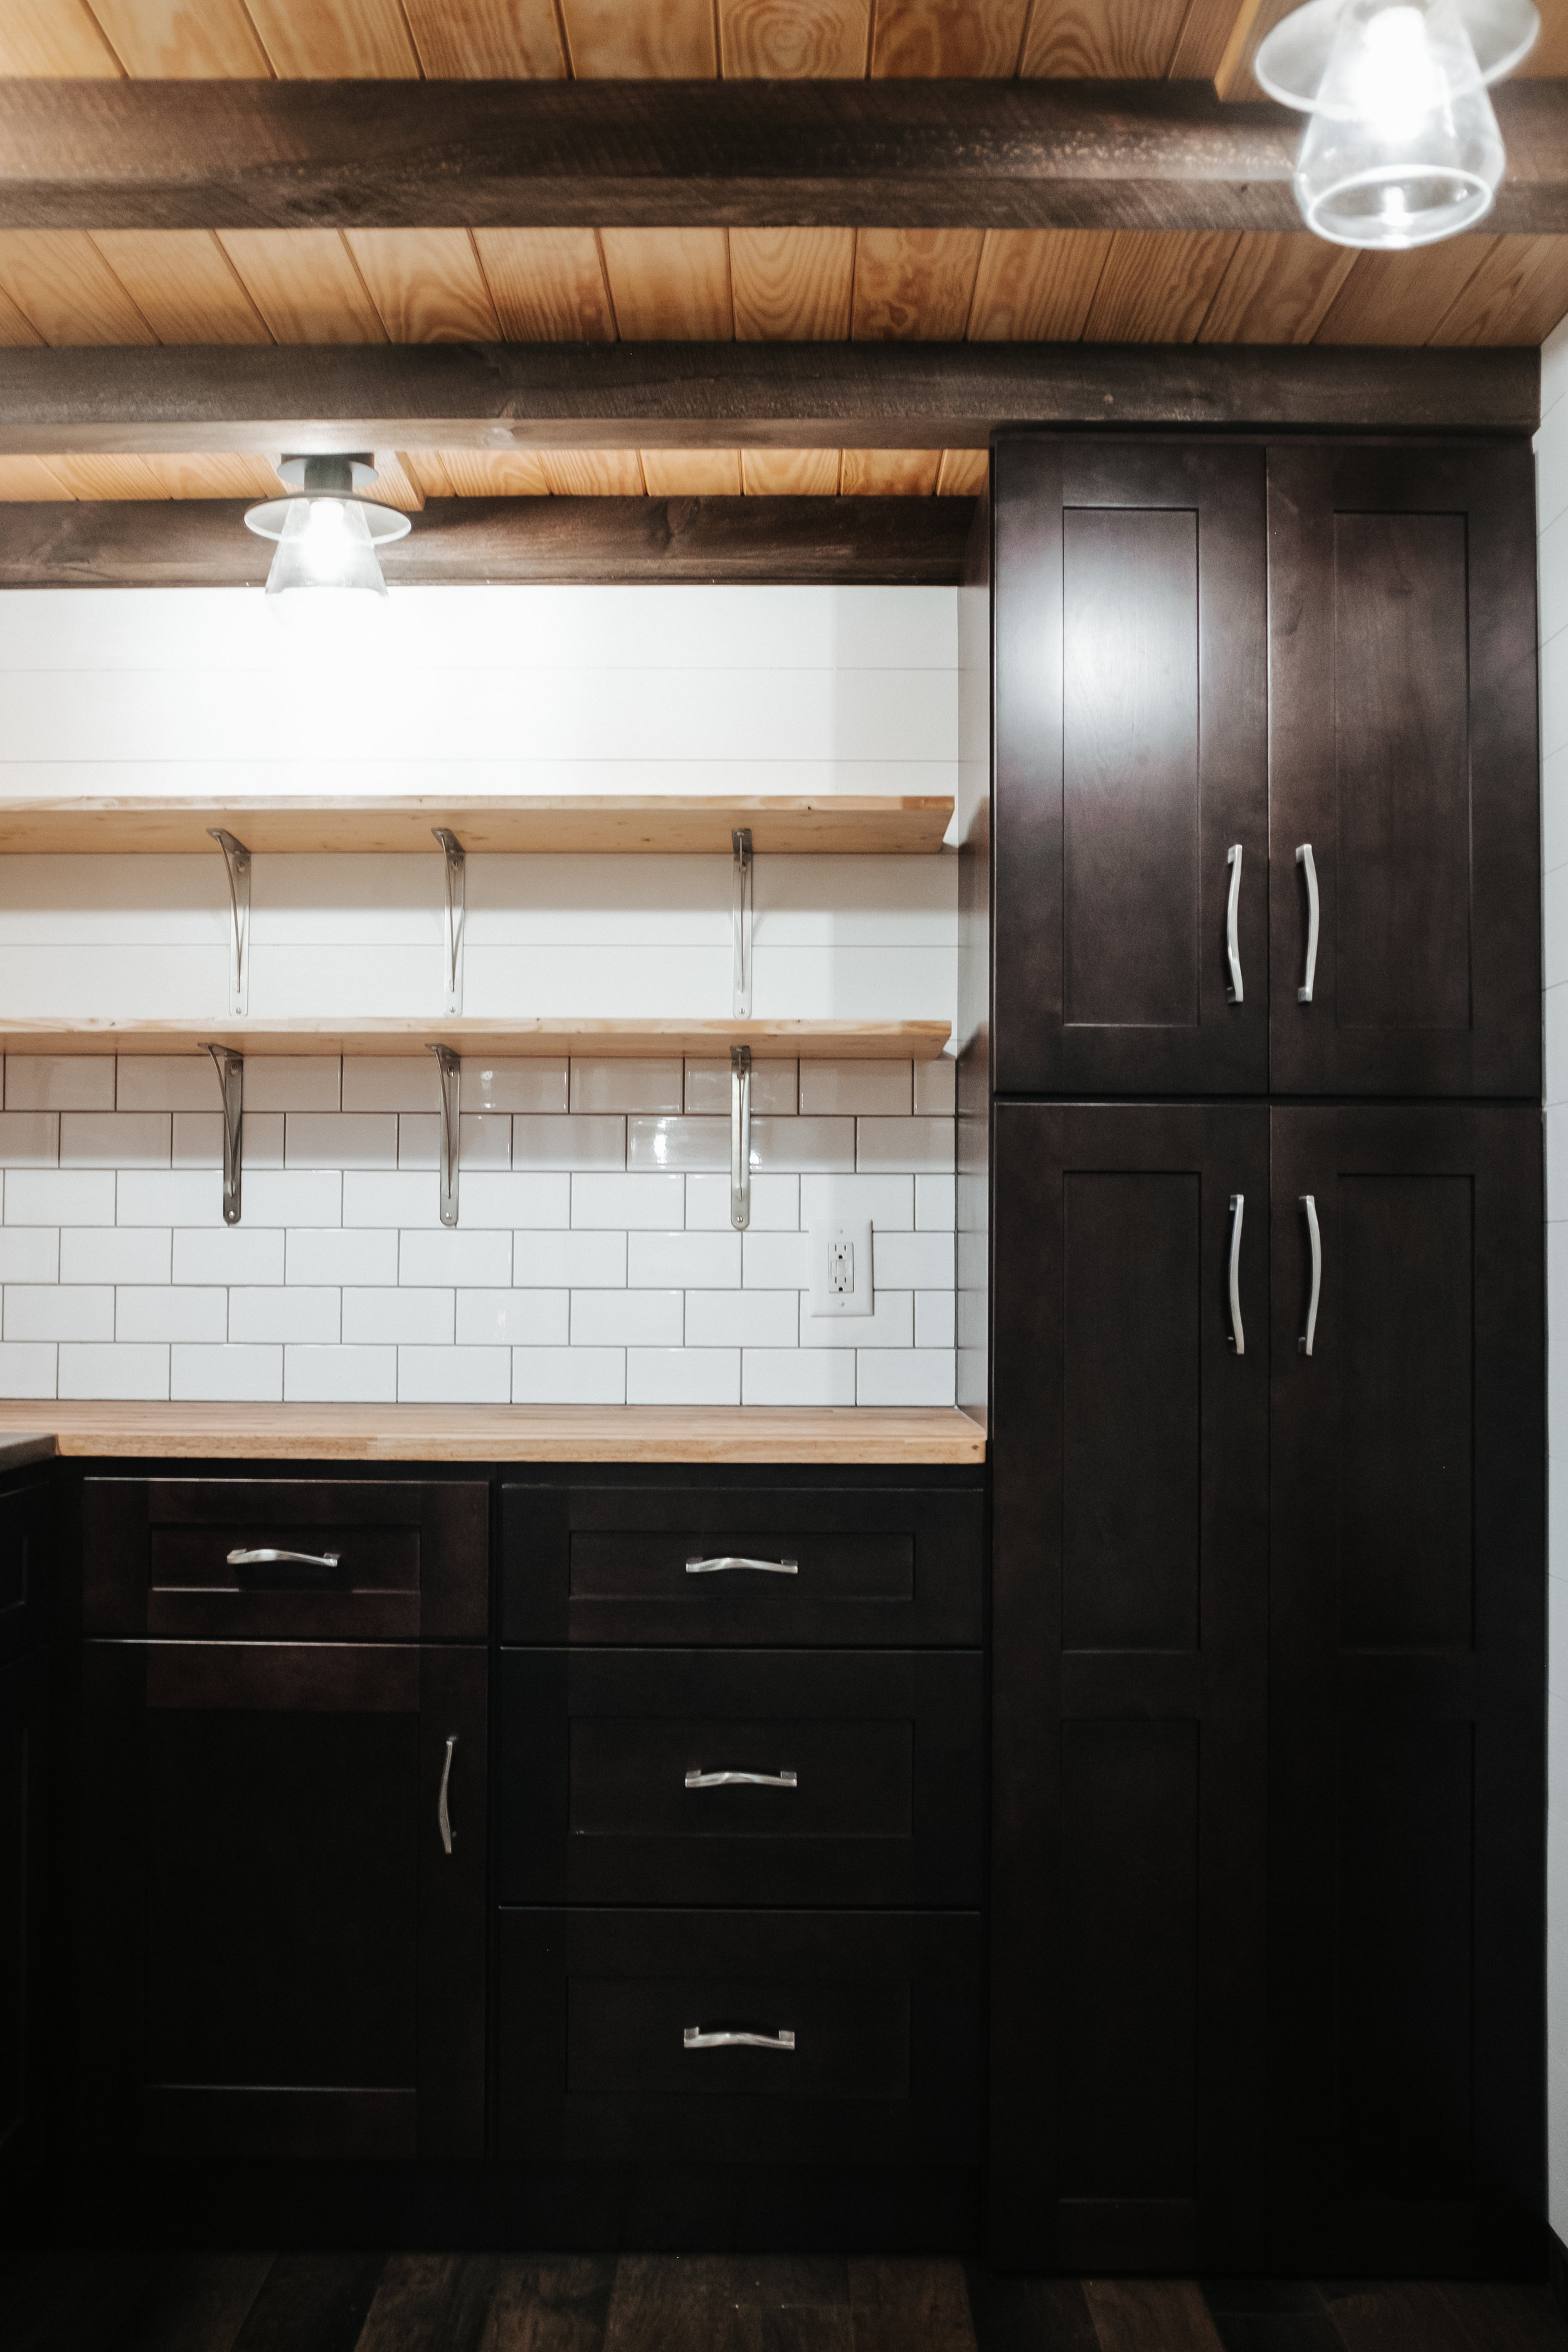 The Ironclad by Wind River Tiny Homes - shaker cabinets, butcher block counter, stainless hardware, subway tile, open shelving, natural pine ceiling